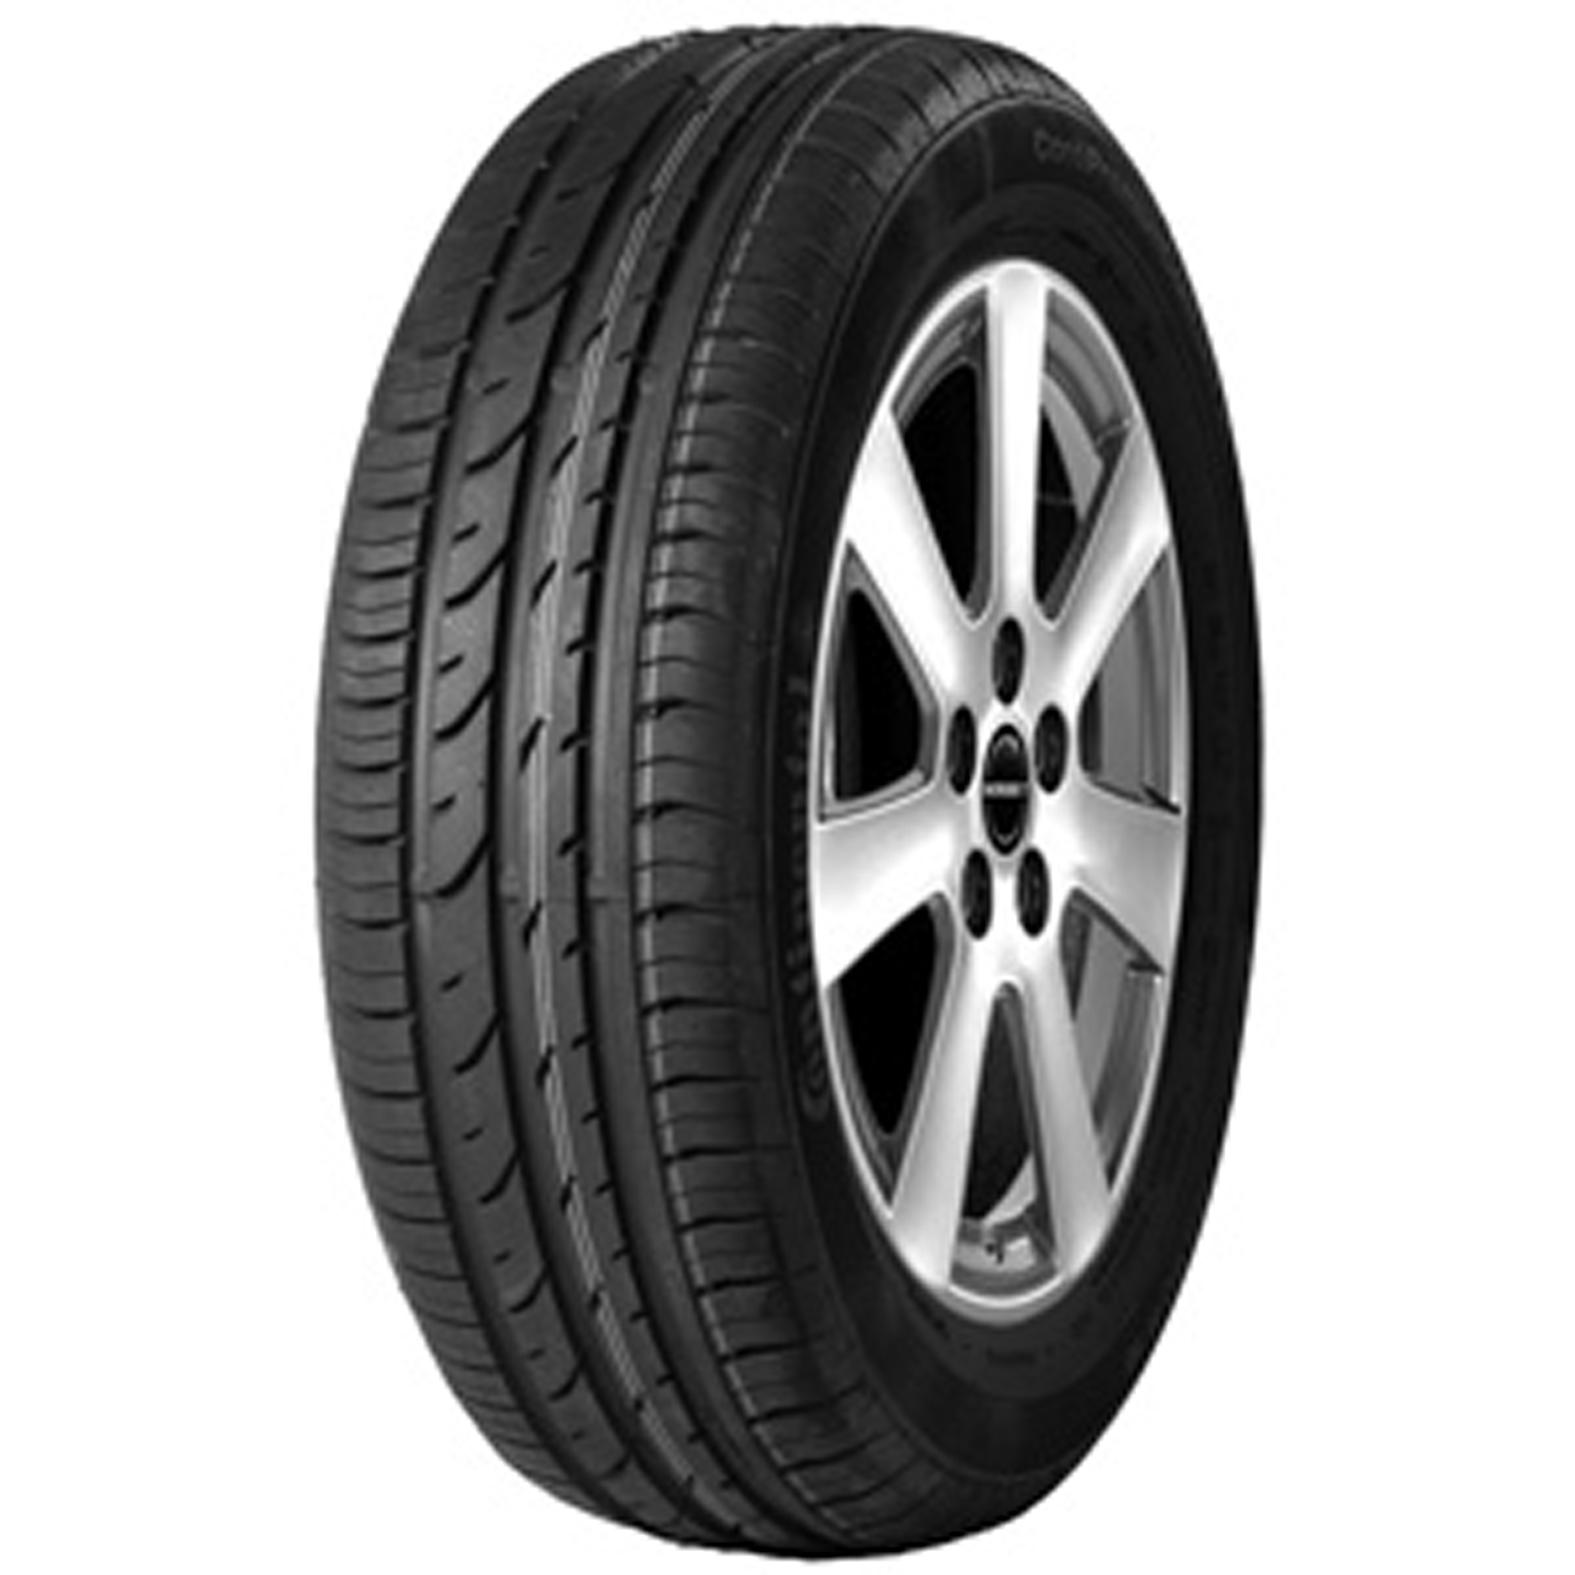 Continental CONTIPREMIUMCONTACT 2 tire - angle